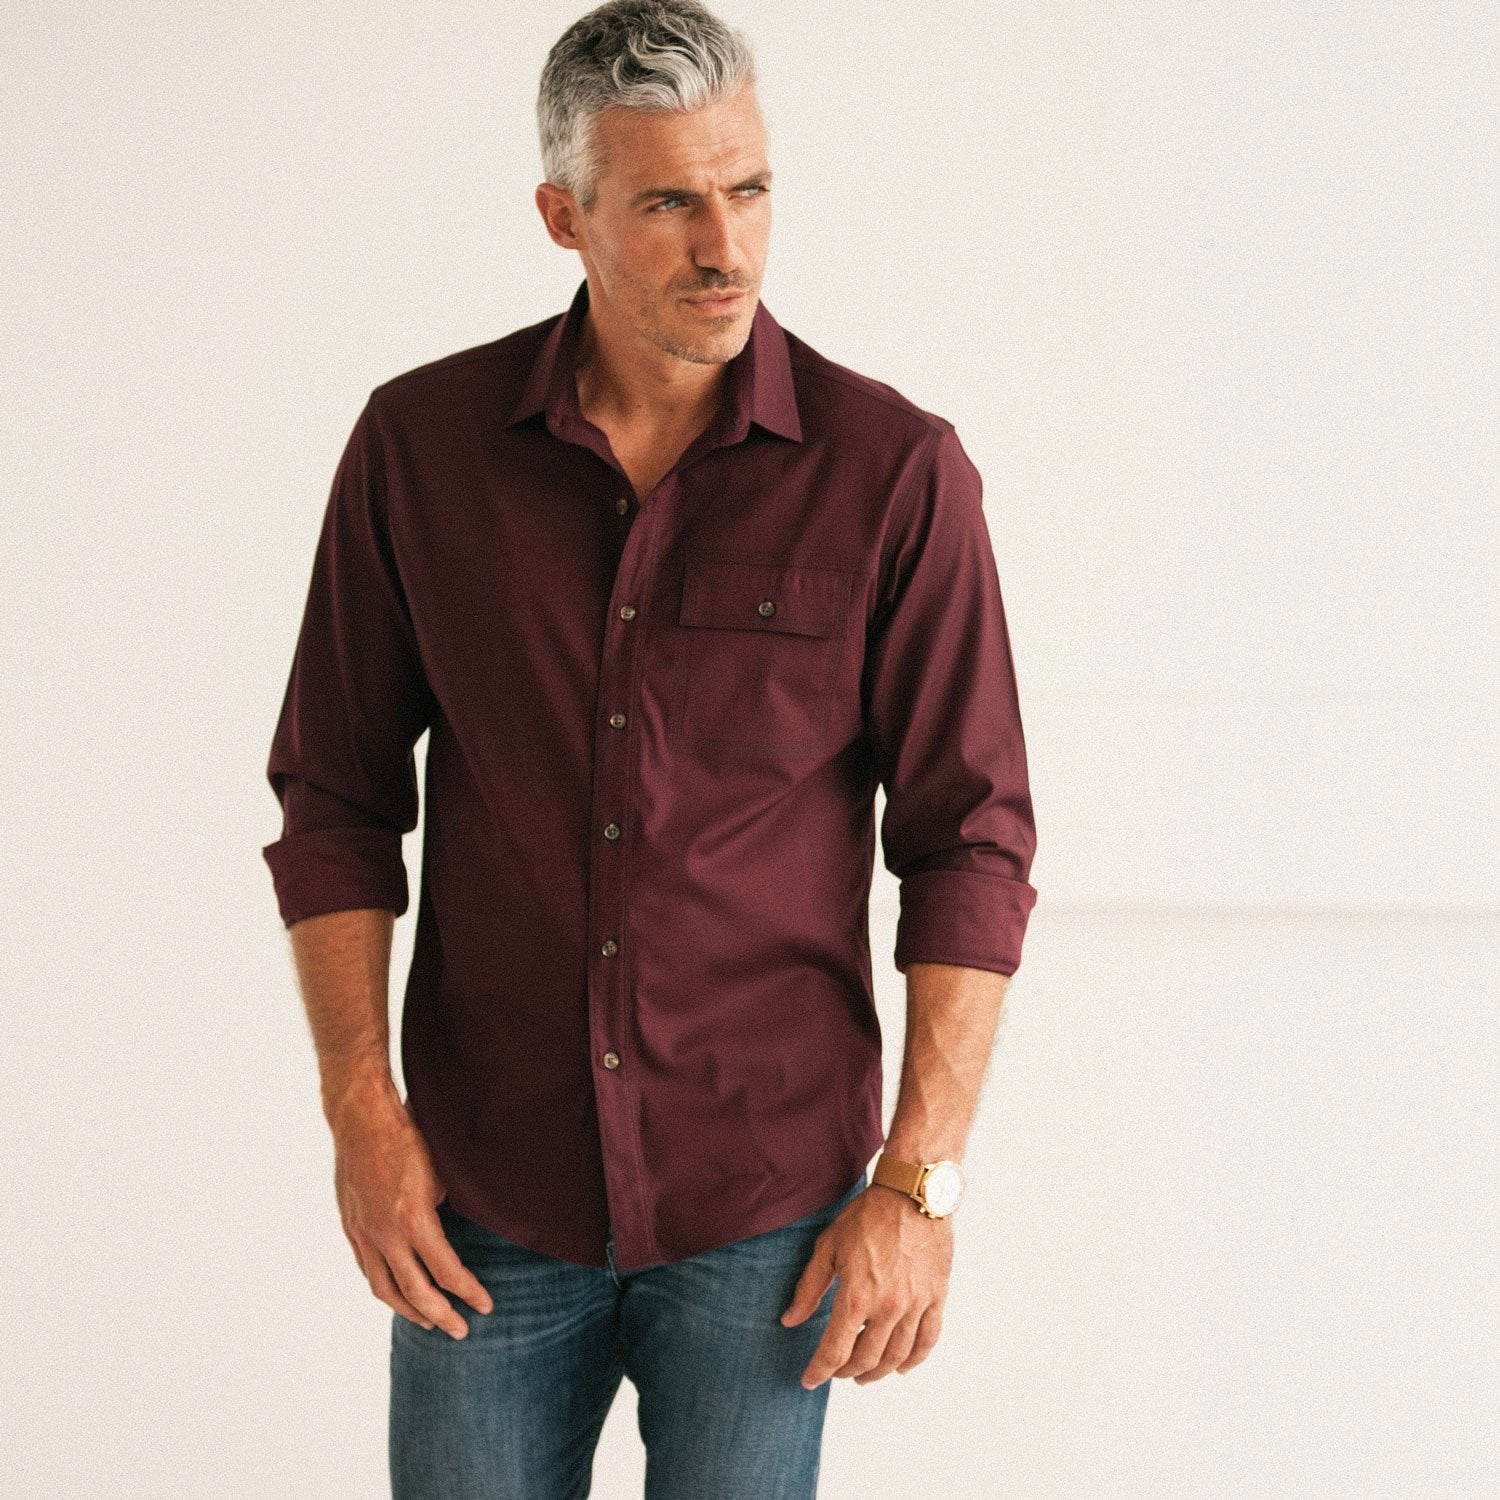 Men's Casual Shirt Buttons Pulling Versus Correct Fit